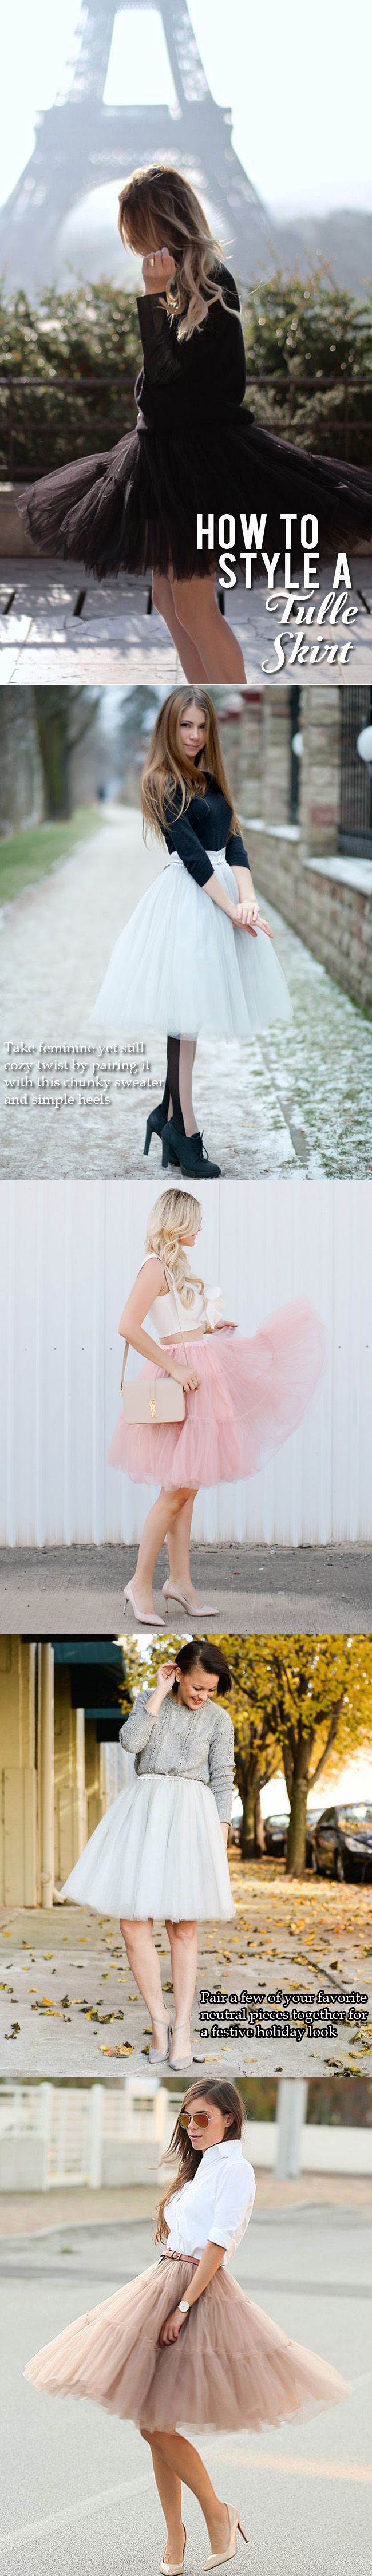 How to style a tulle skirt for your holiday party. Take feminine yet still cozy twist by pairing it with this chunky sweater and simple heels or pair a few of your favorite neutral pieces together for a festive holiday look.